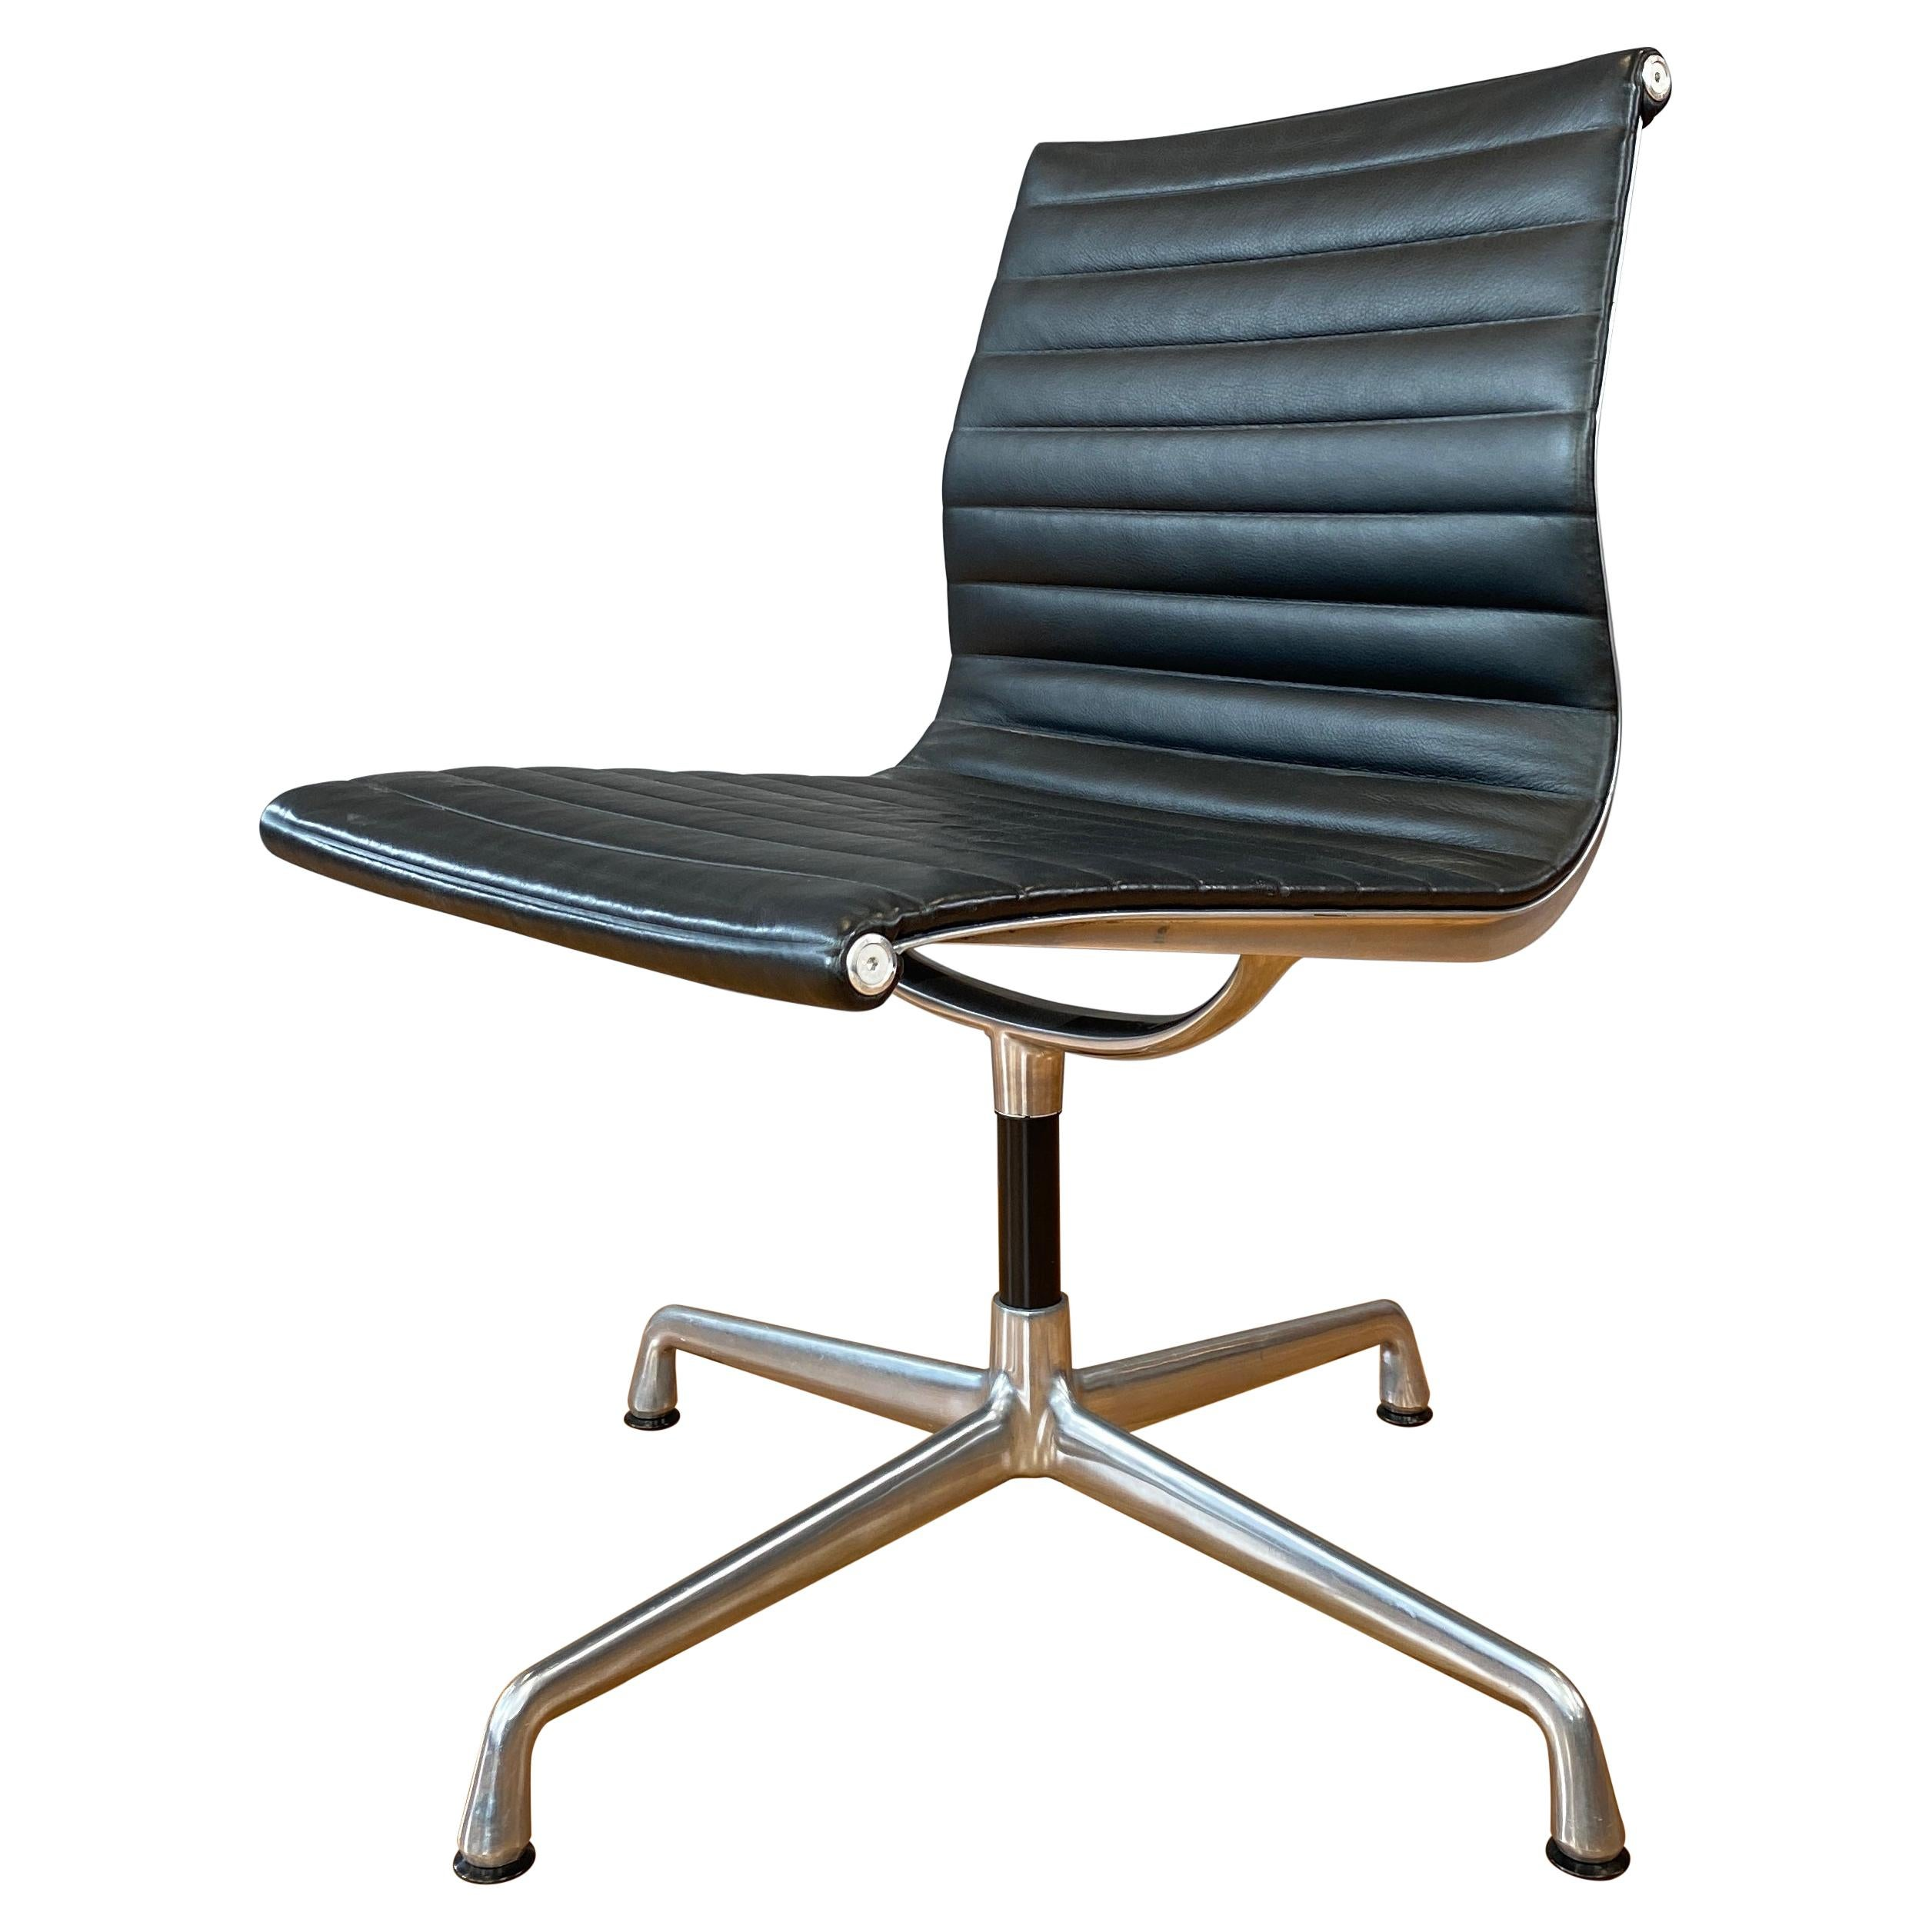 Eames Aluminum Group Side Chair, in Black Leather, 4 Star Base